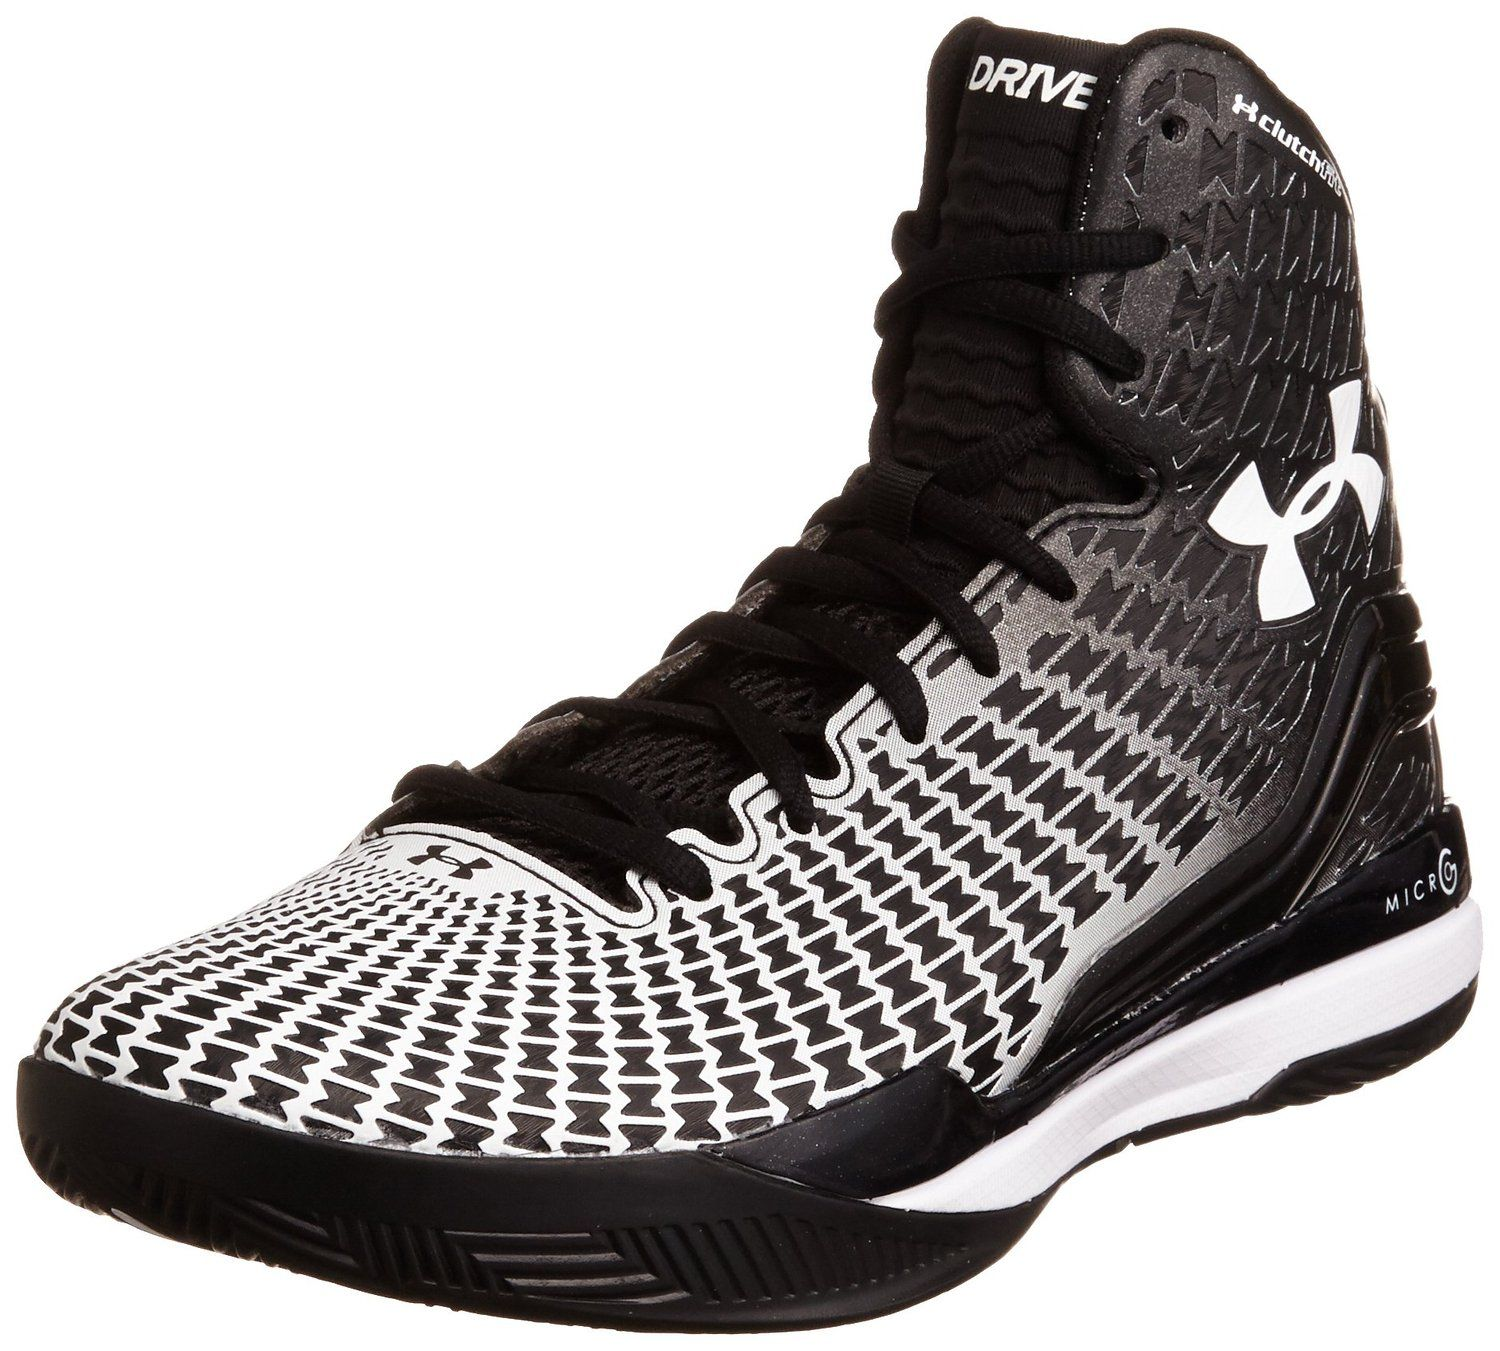 basketball shoes, Under armour shoes